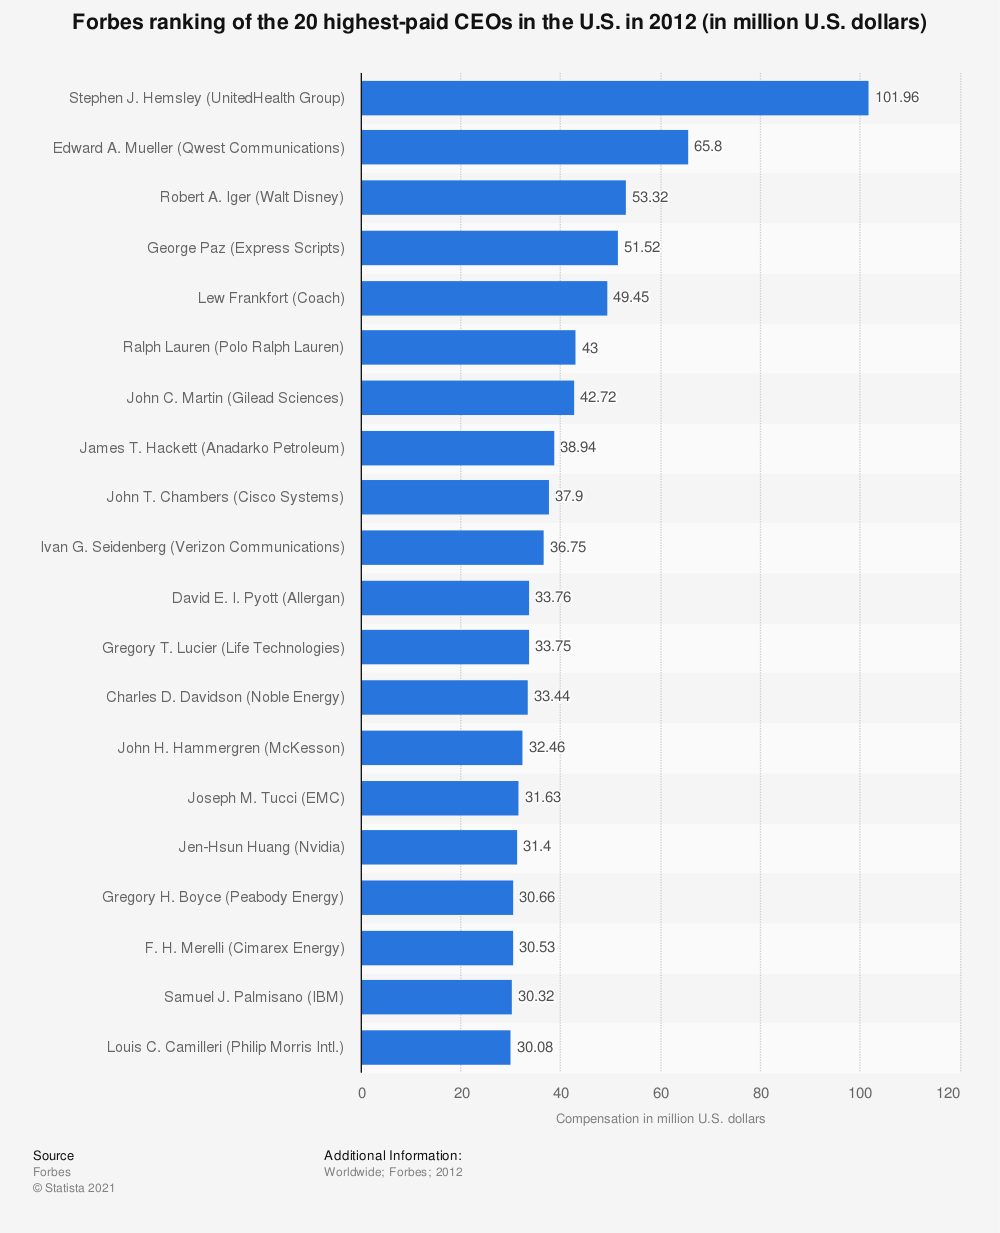 Statistic: Forbes ranking of the 20 highest-paid CEOs in the U.S. in 2012 (in million U.S. dollars) | Statista